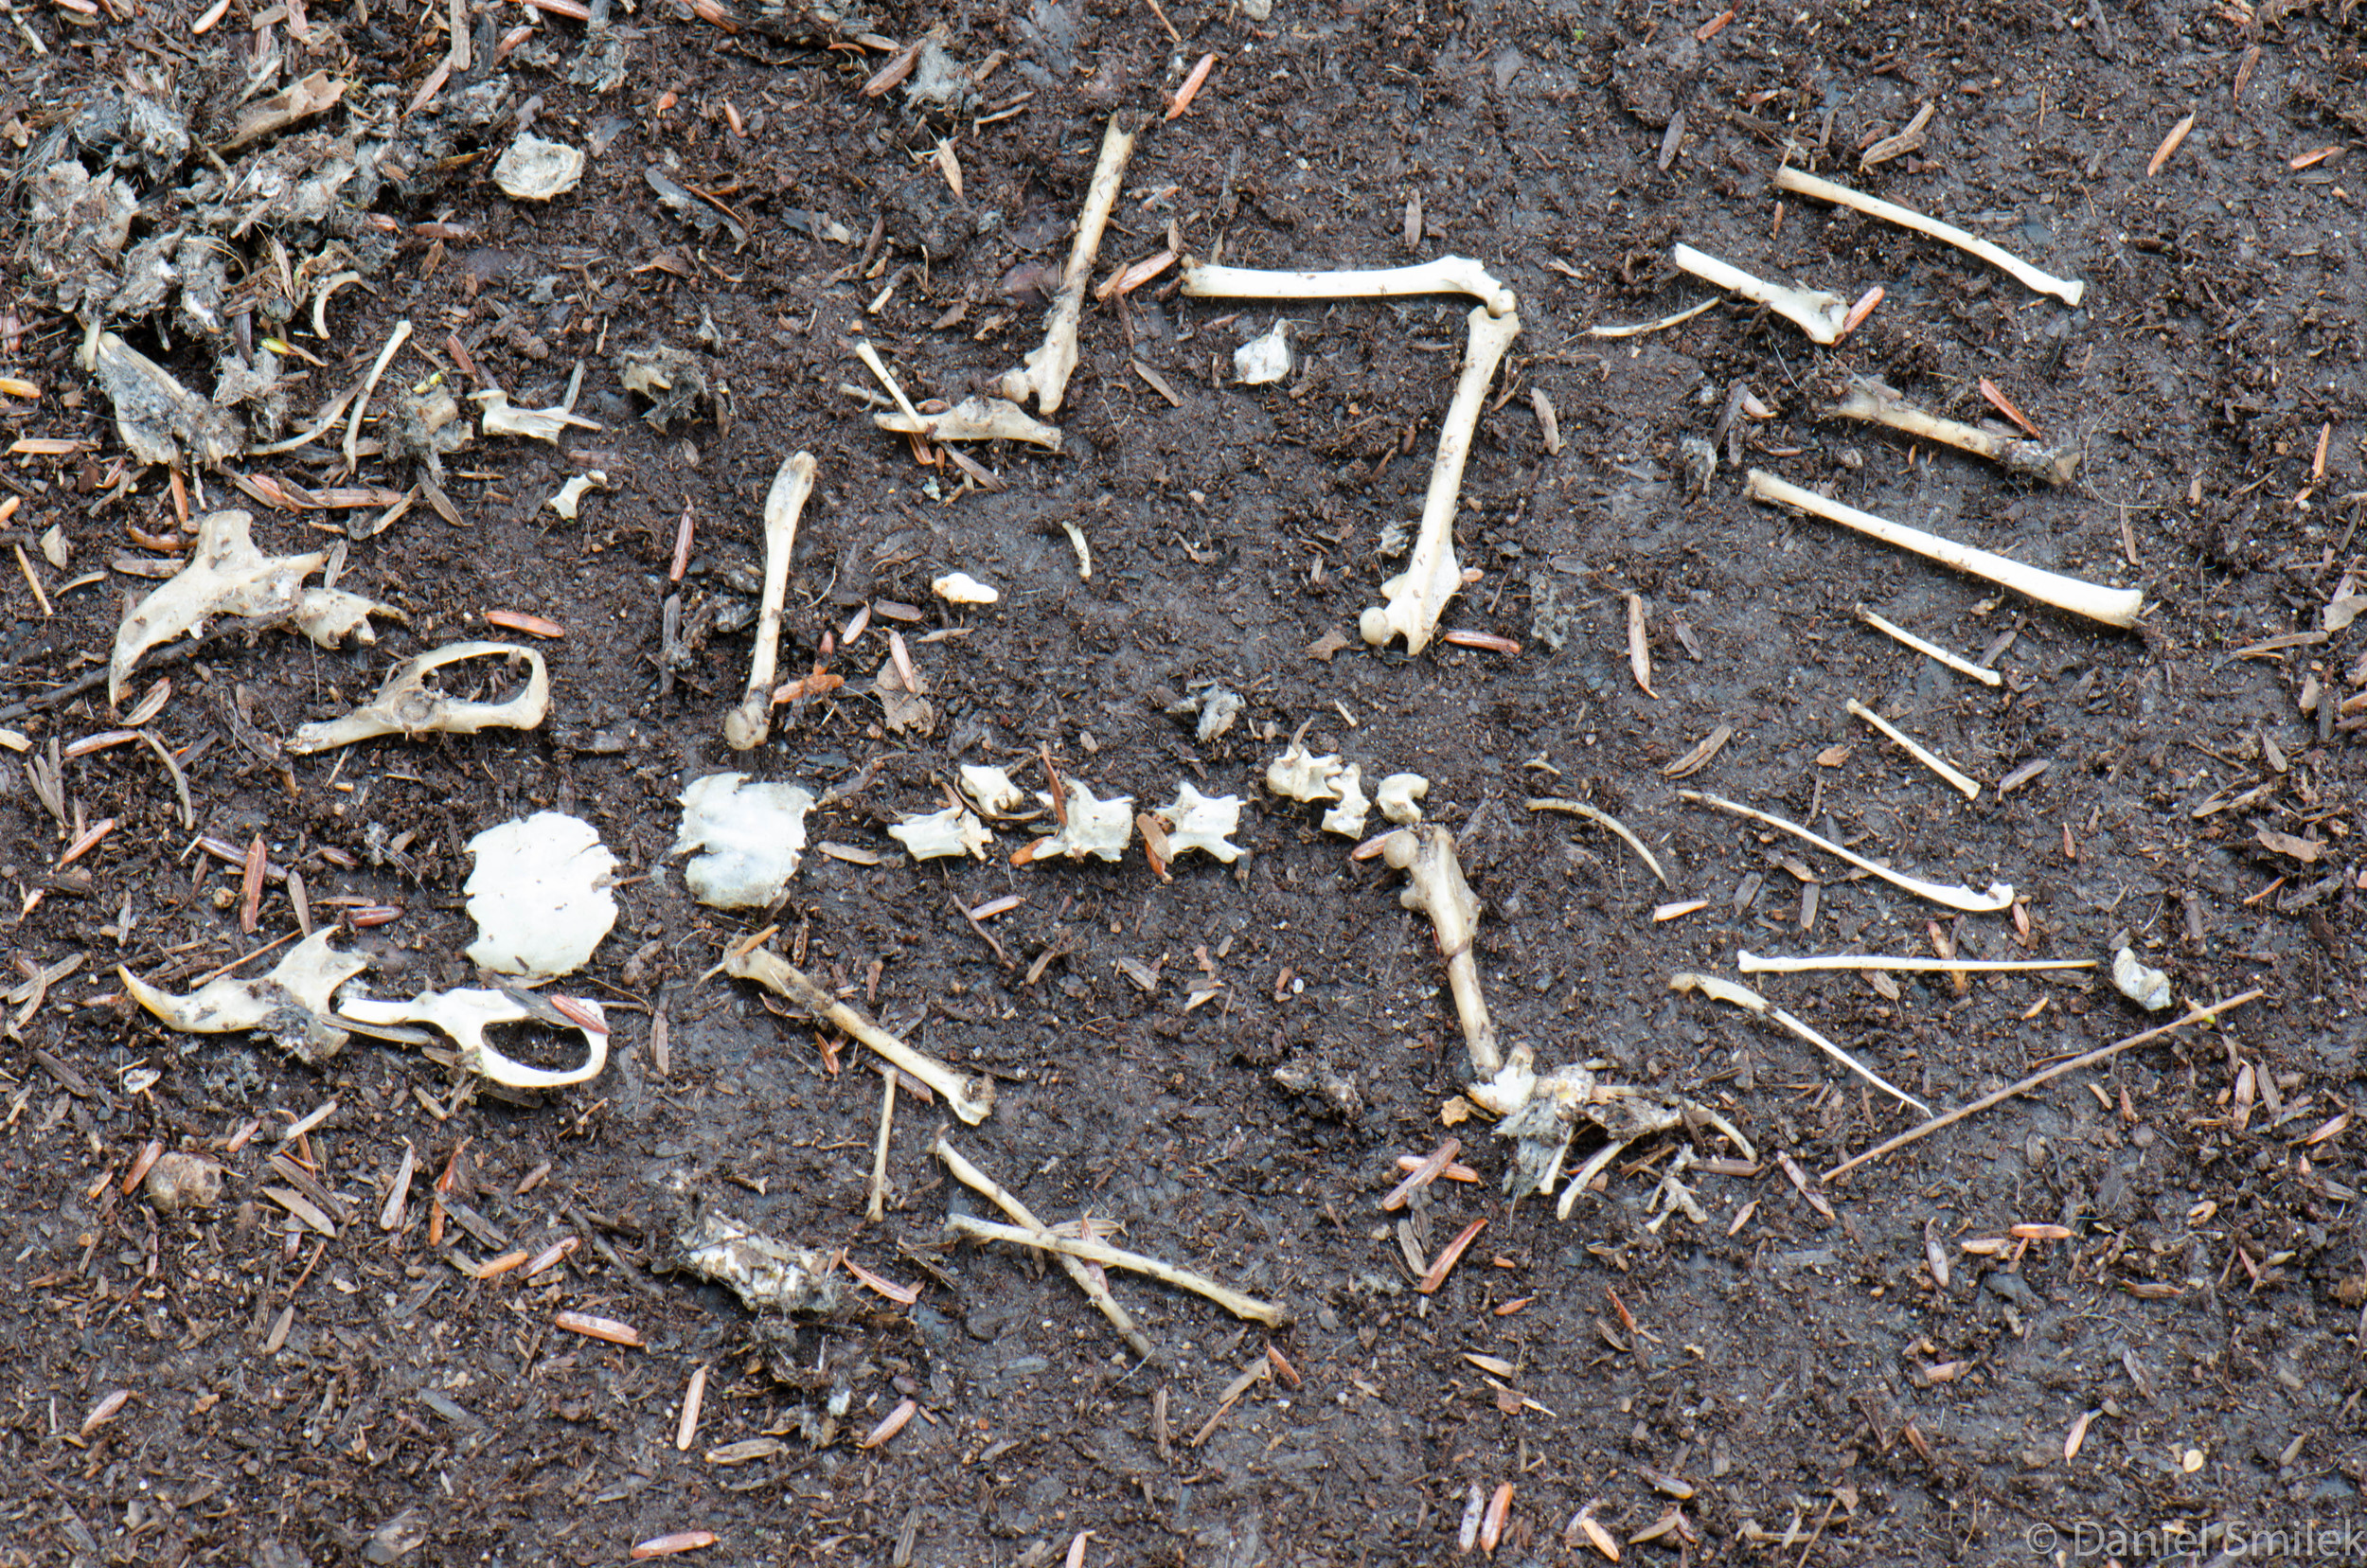 The bones in the owl pellet.